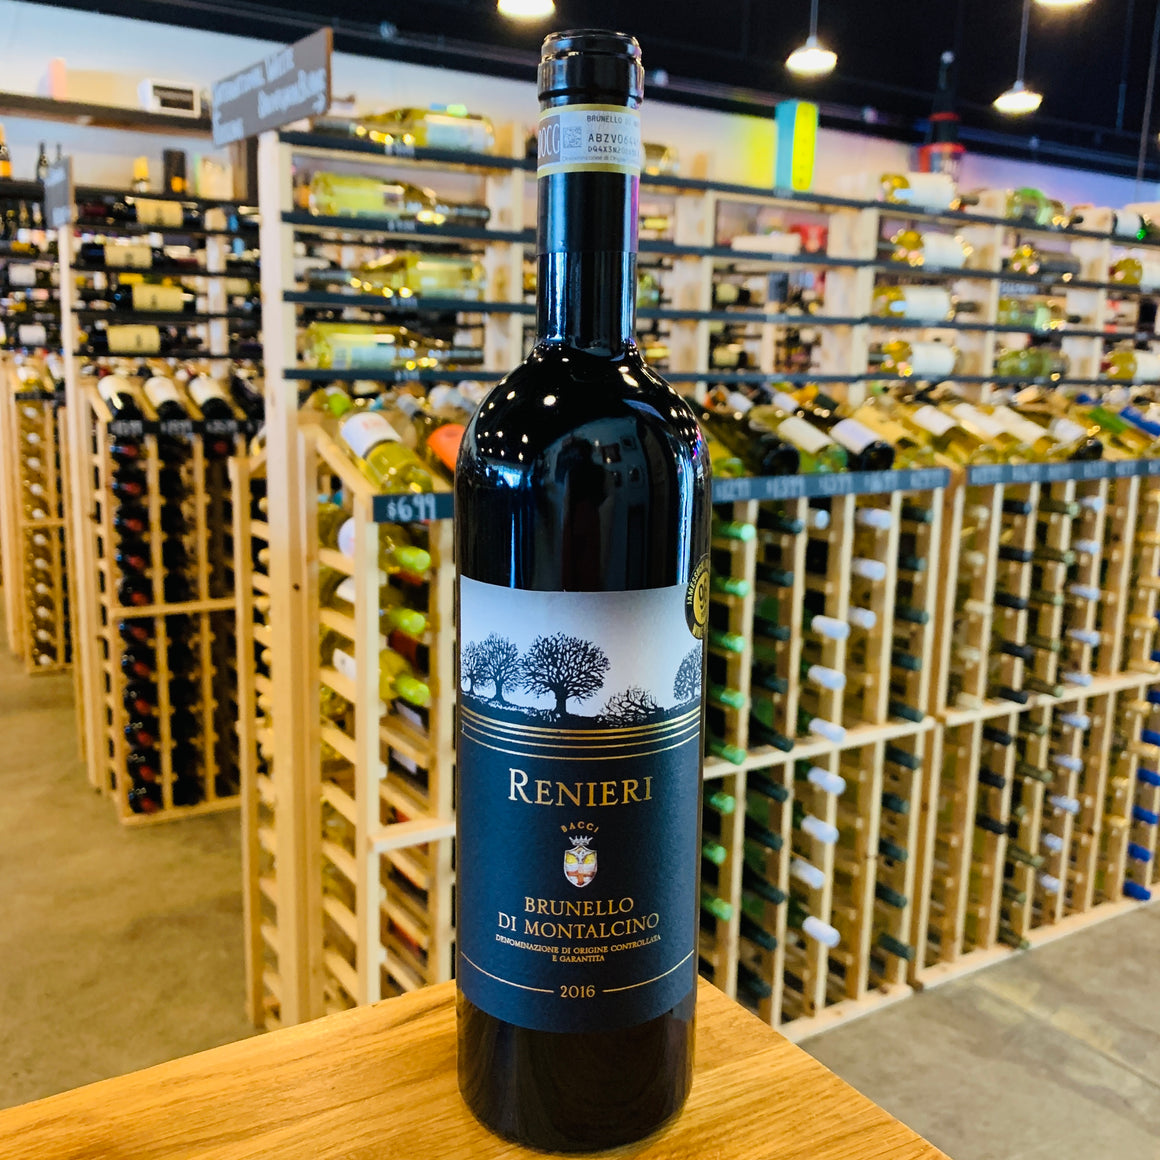 RENIERI BRUNELLO DI MONTALCINO 2016 750ML